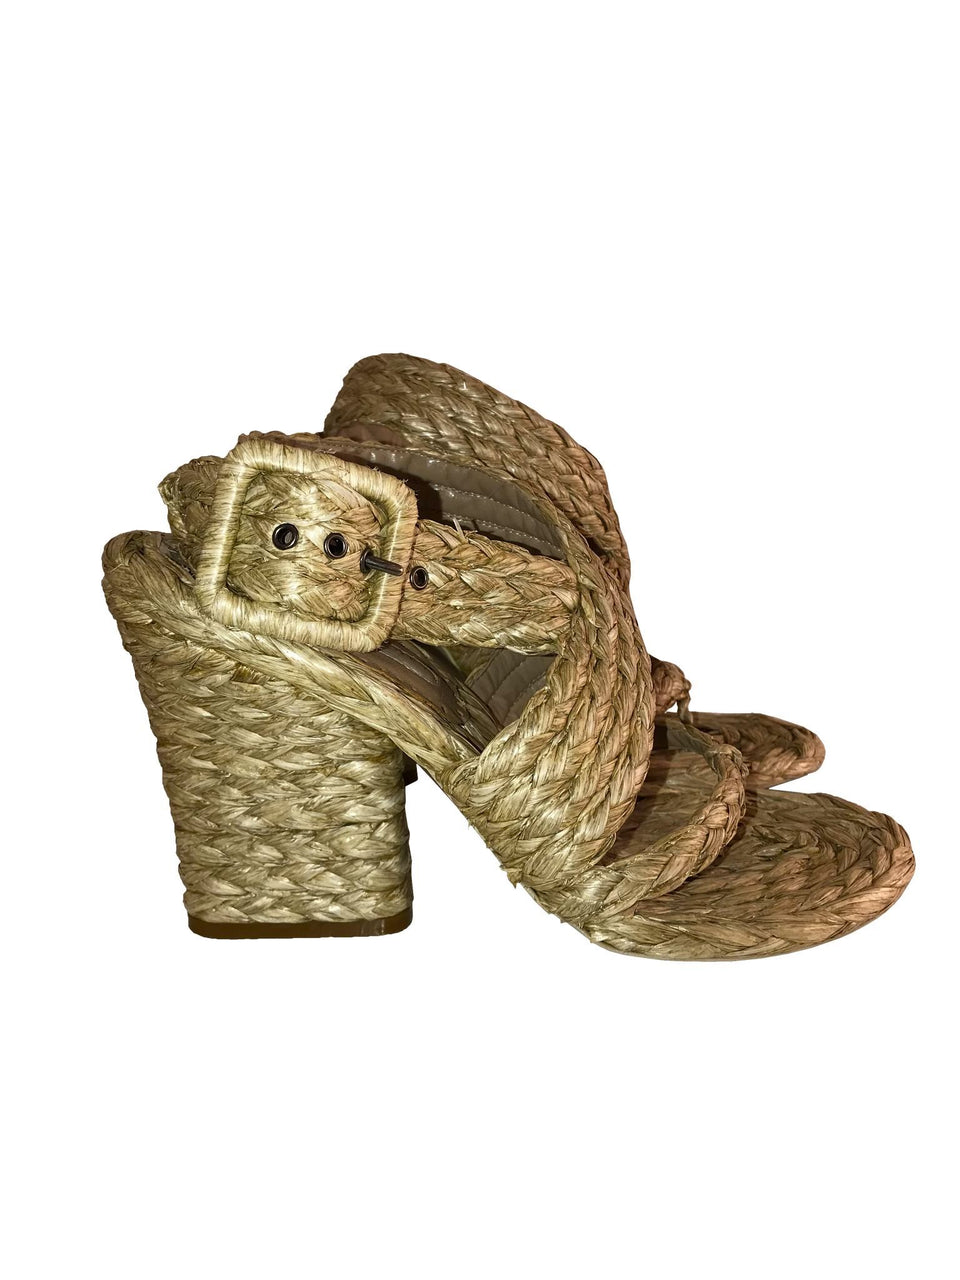 Wicker Straw Thong Sandals